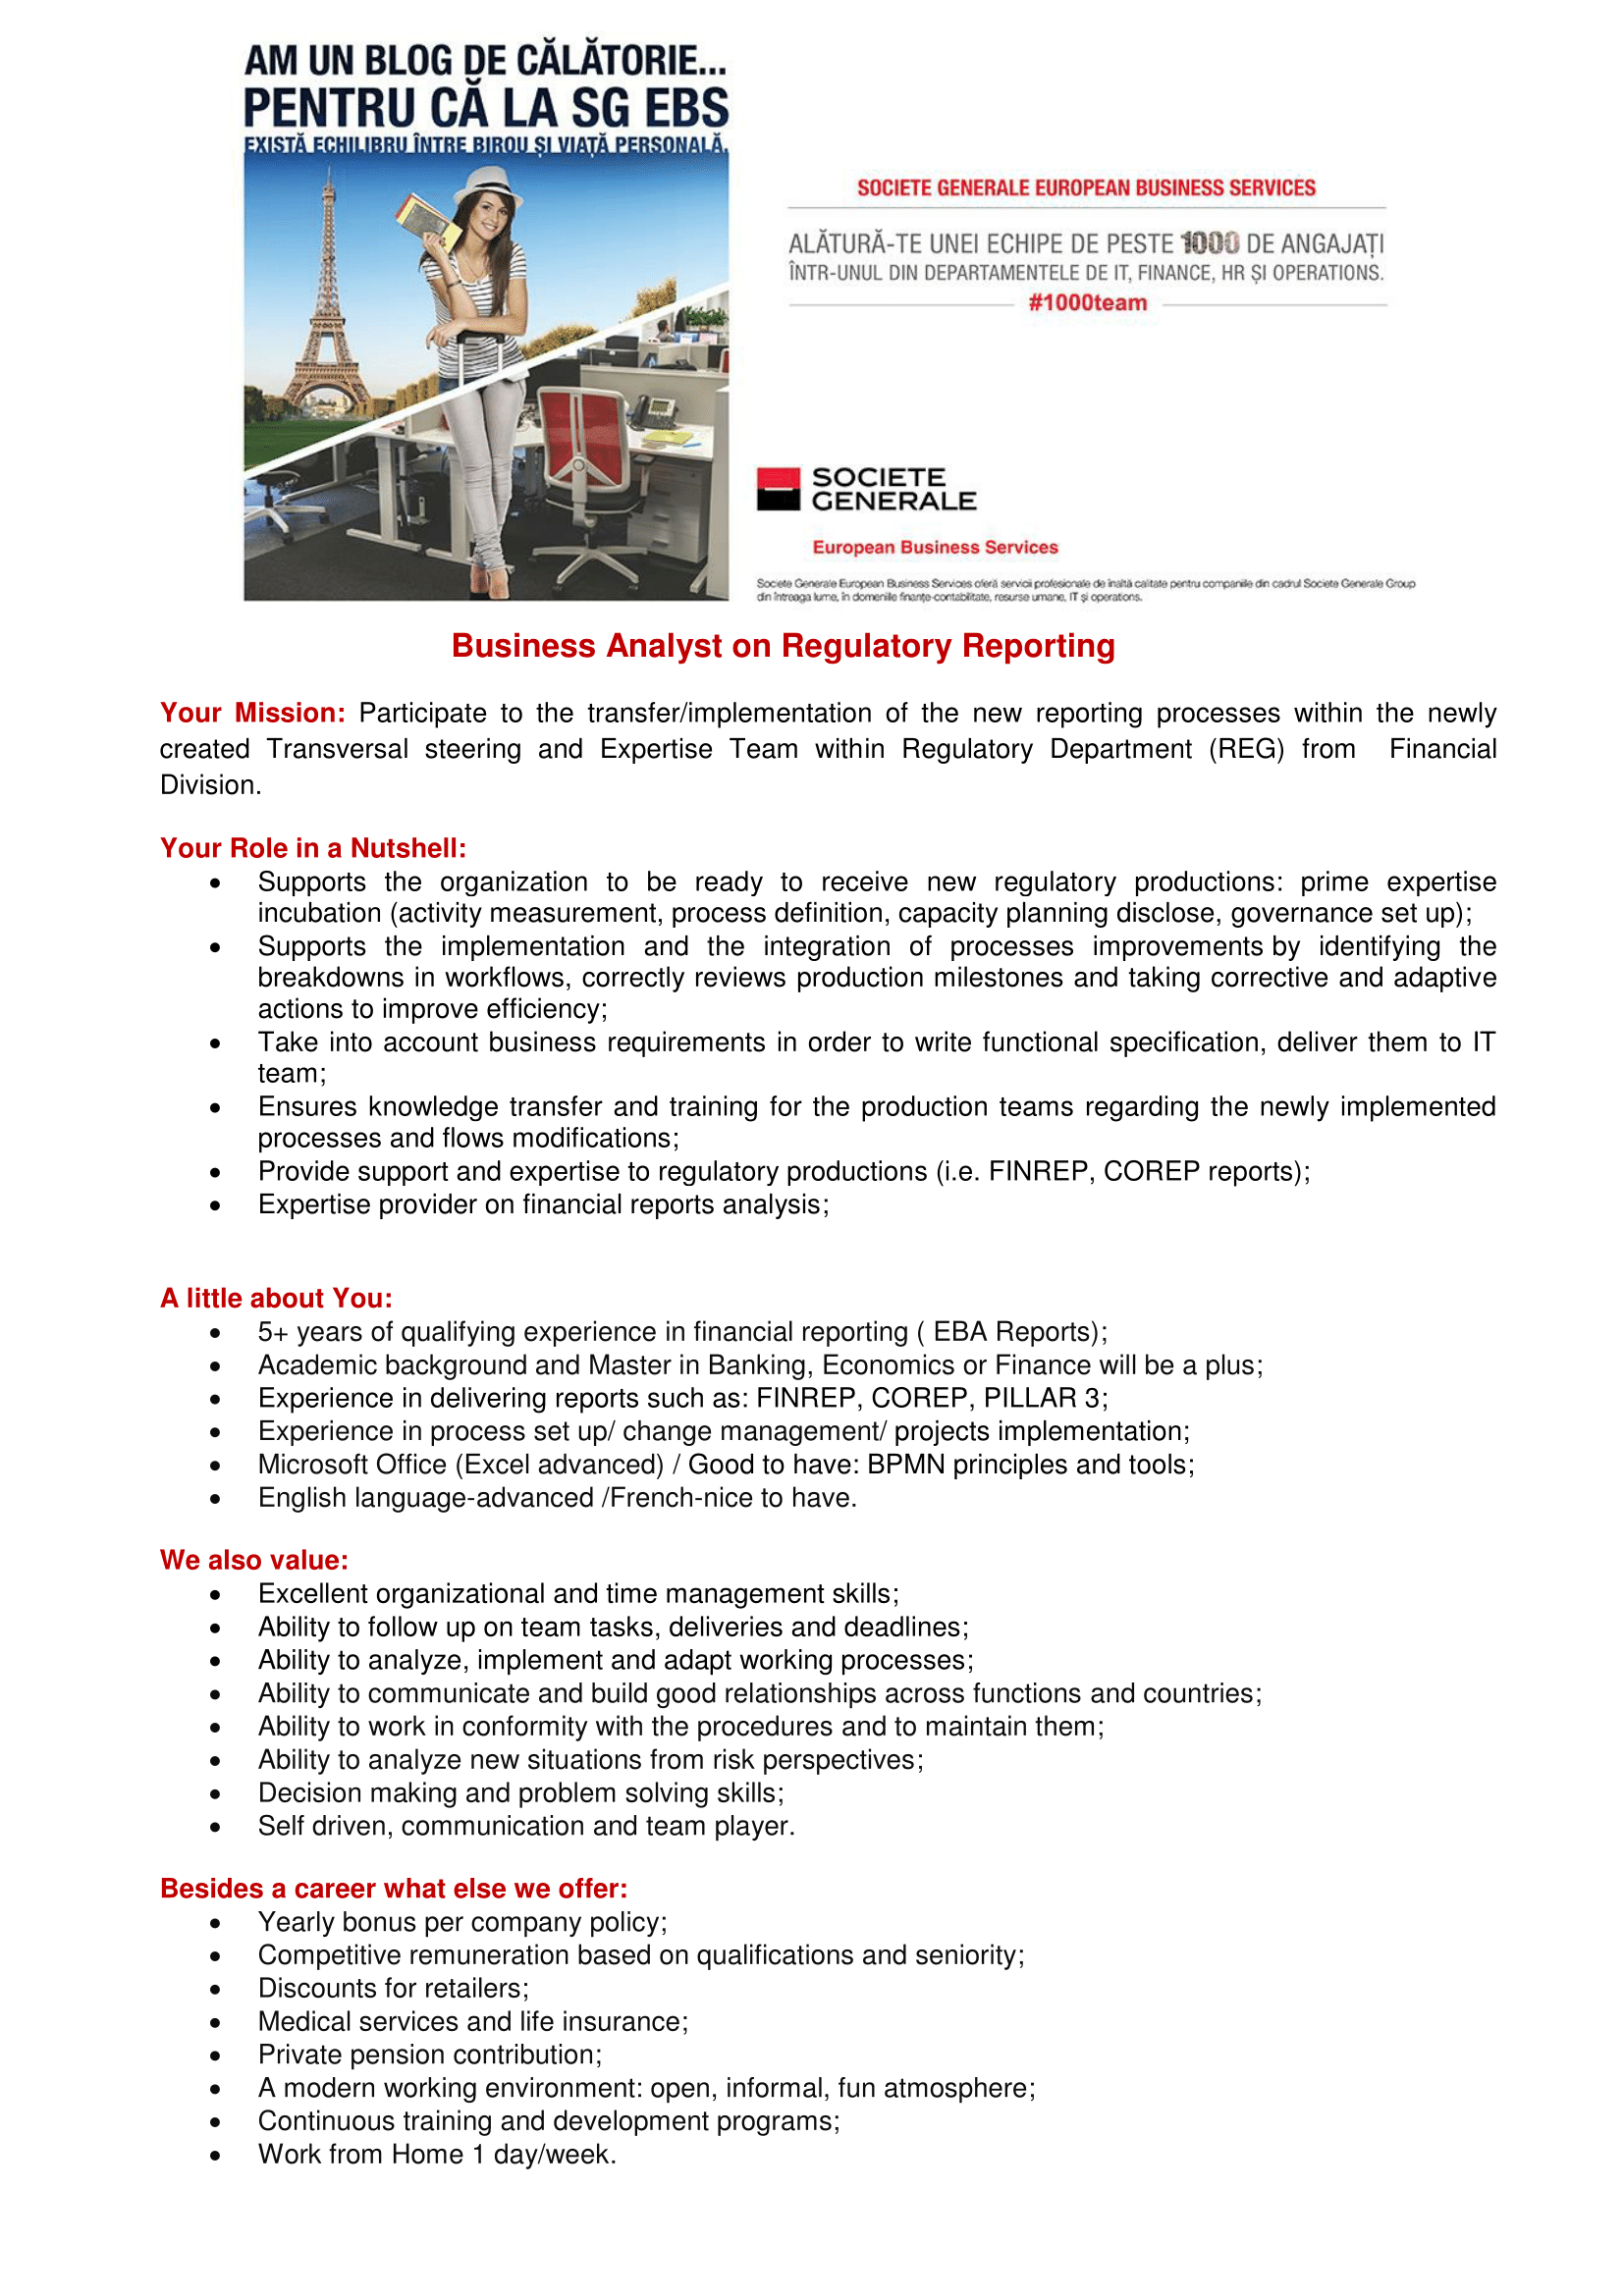 Business Analyst on Regulatory Reporting_EG EBS-1